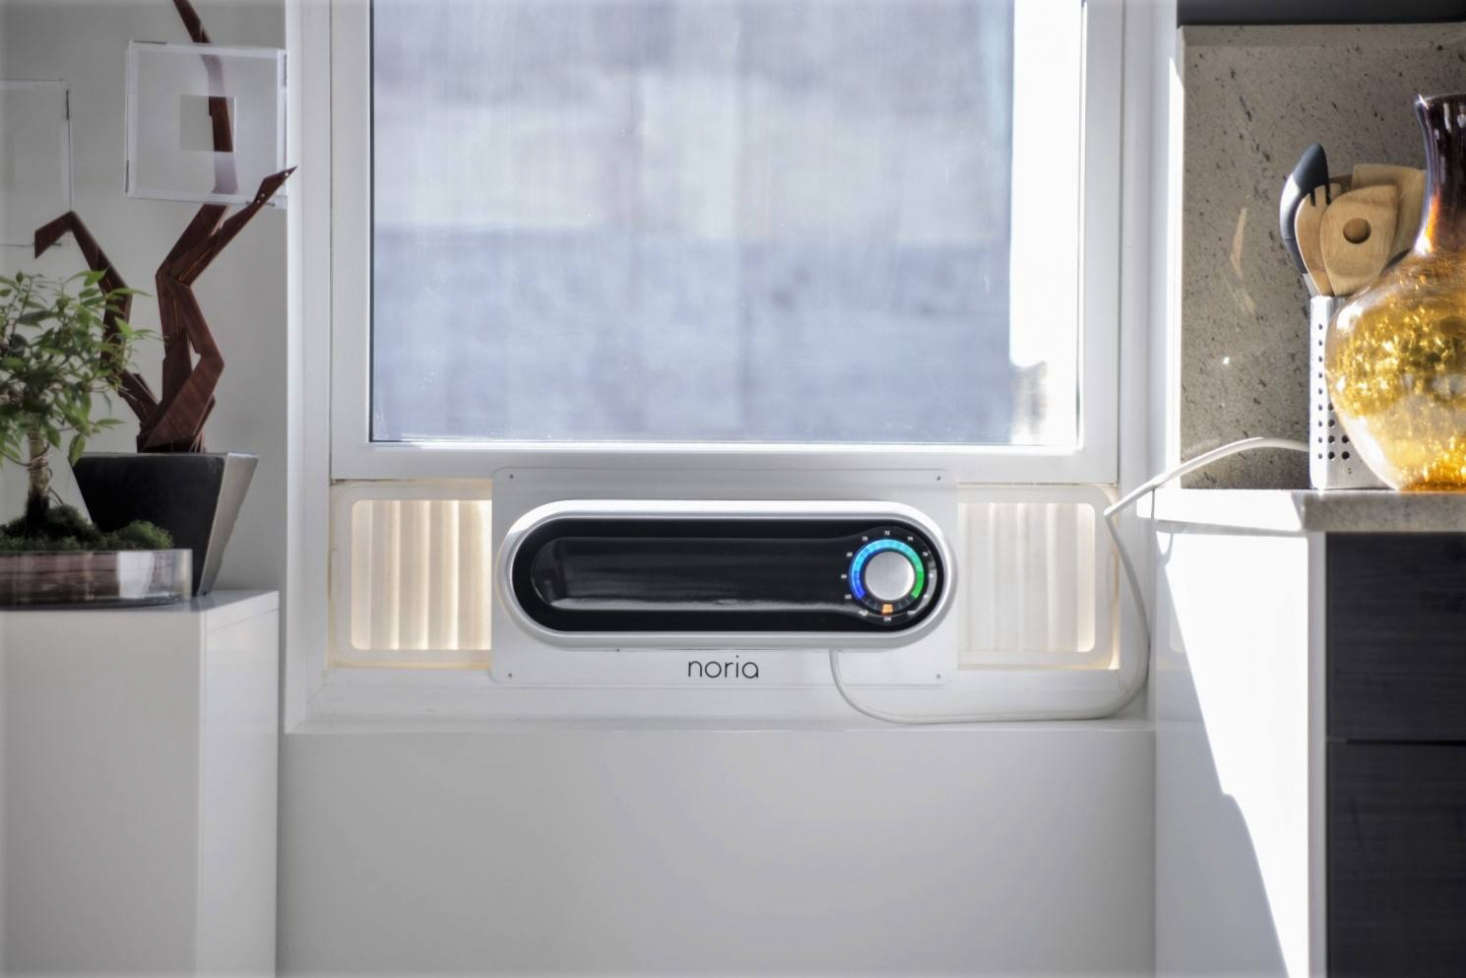 The Noria Smart Air Conditioner Was Funded On Kickstarter And Will Be  Available In Spring 2018